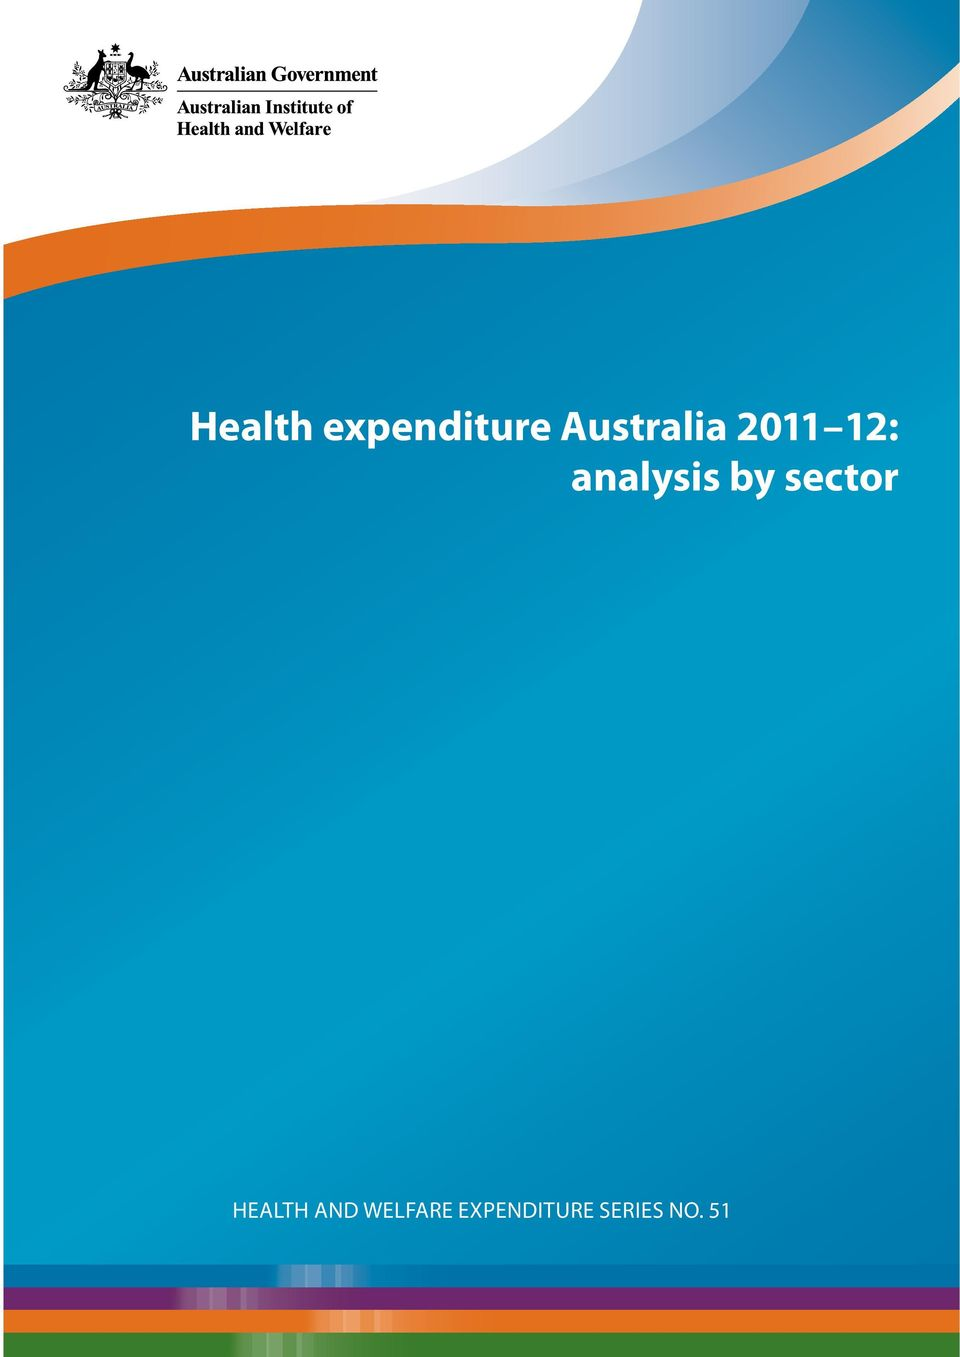 analysis by sector HEALTH